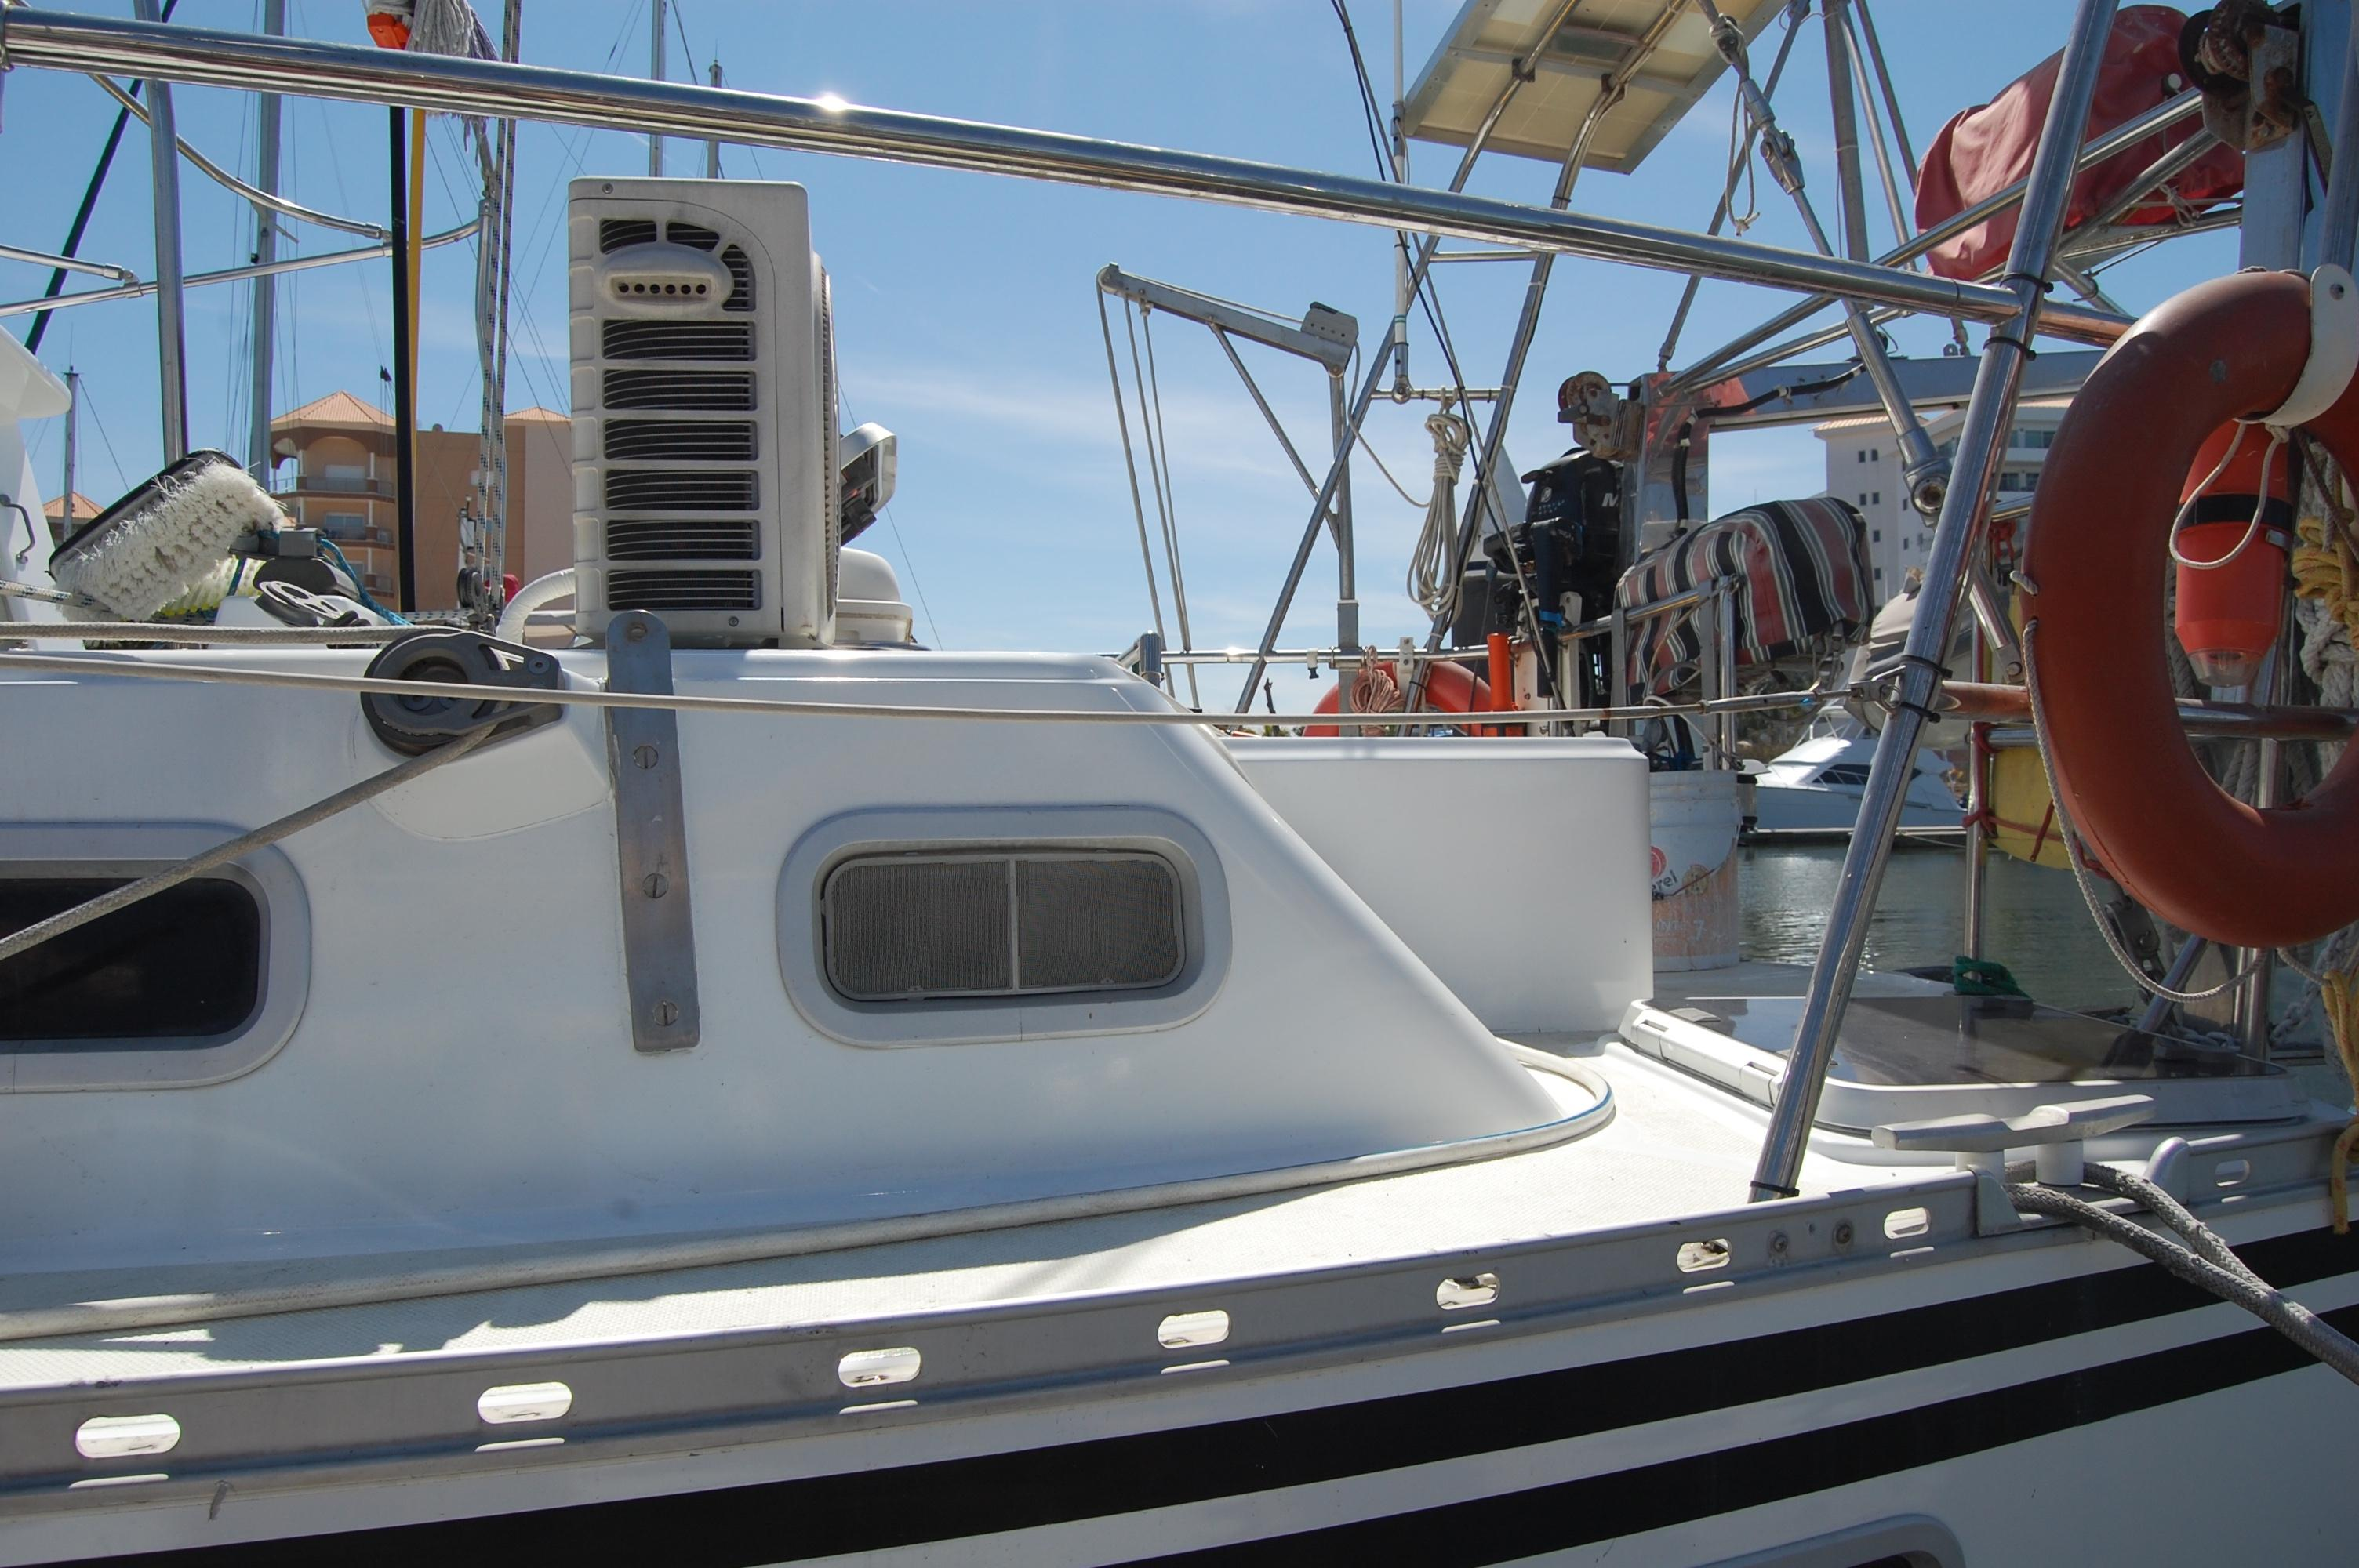 46' Maple Leaf Queen Cutter+Photo 27